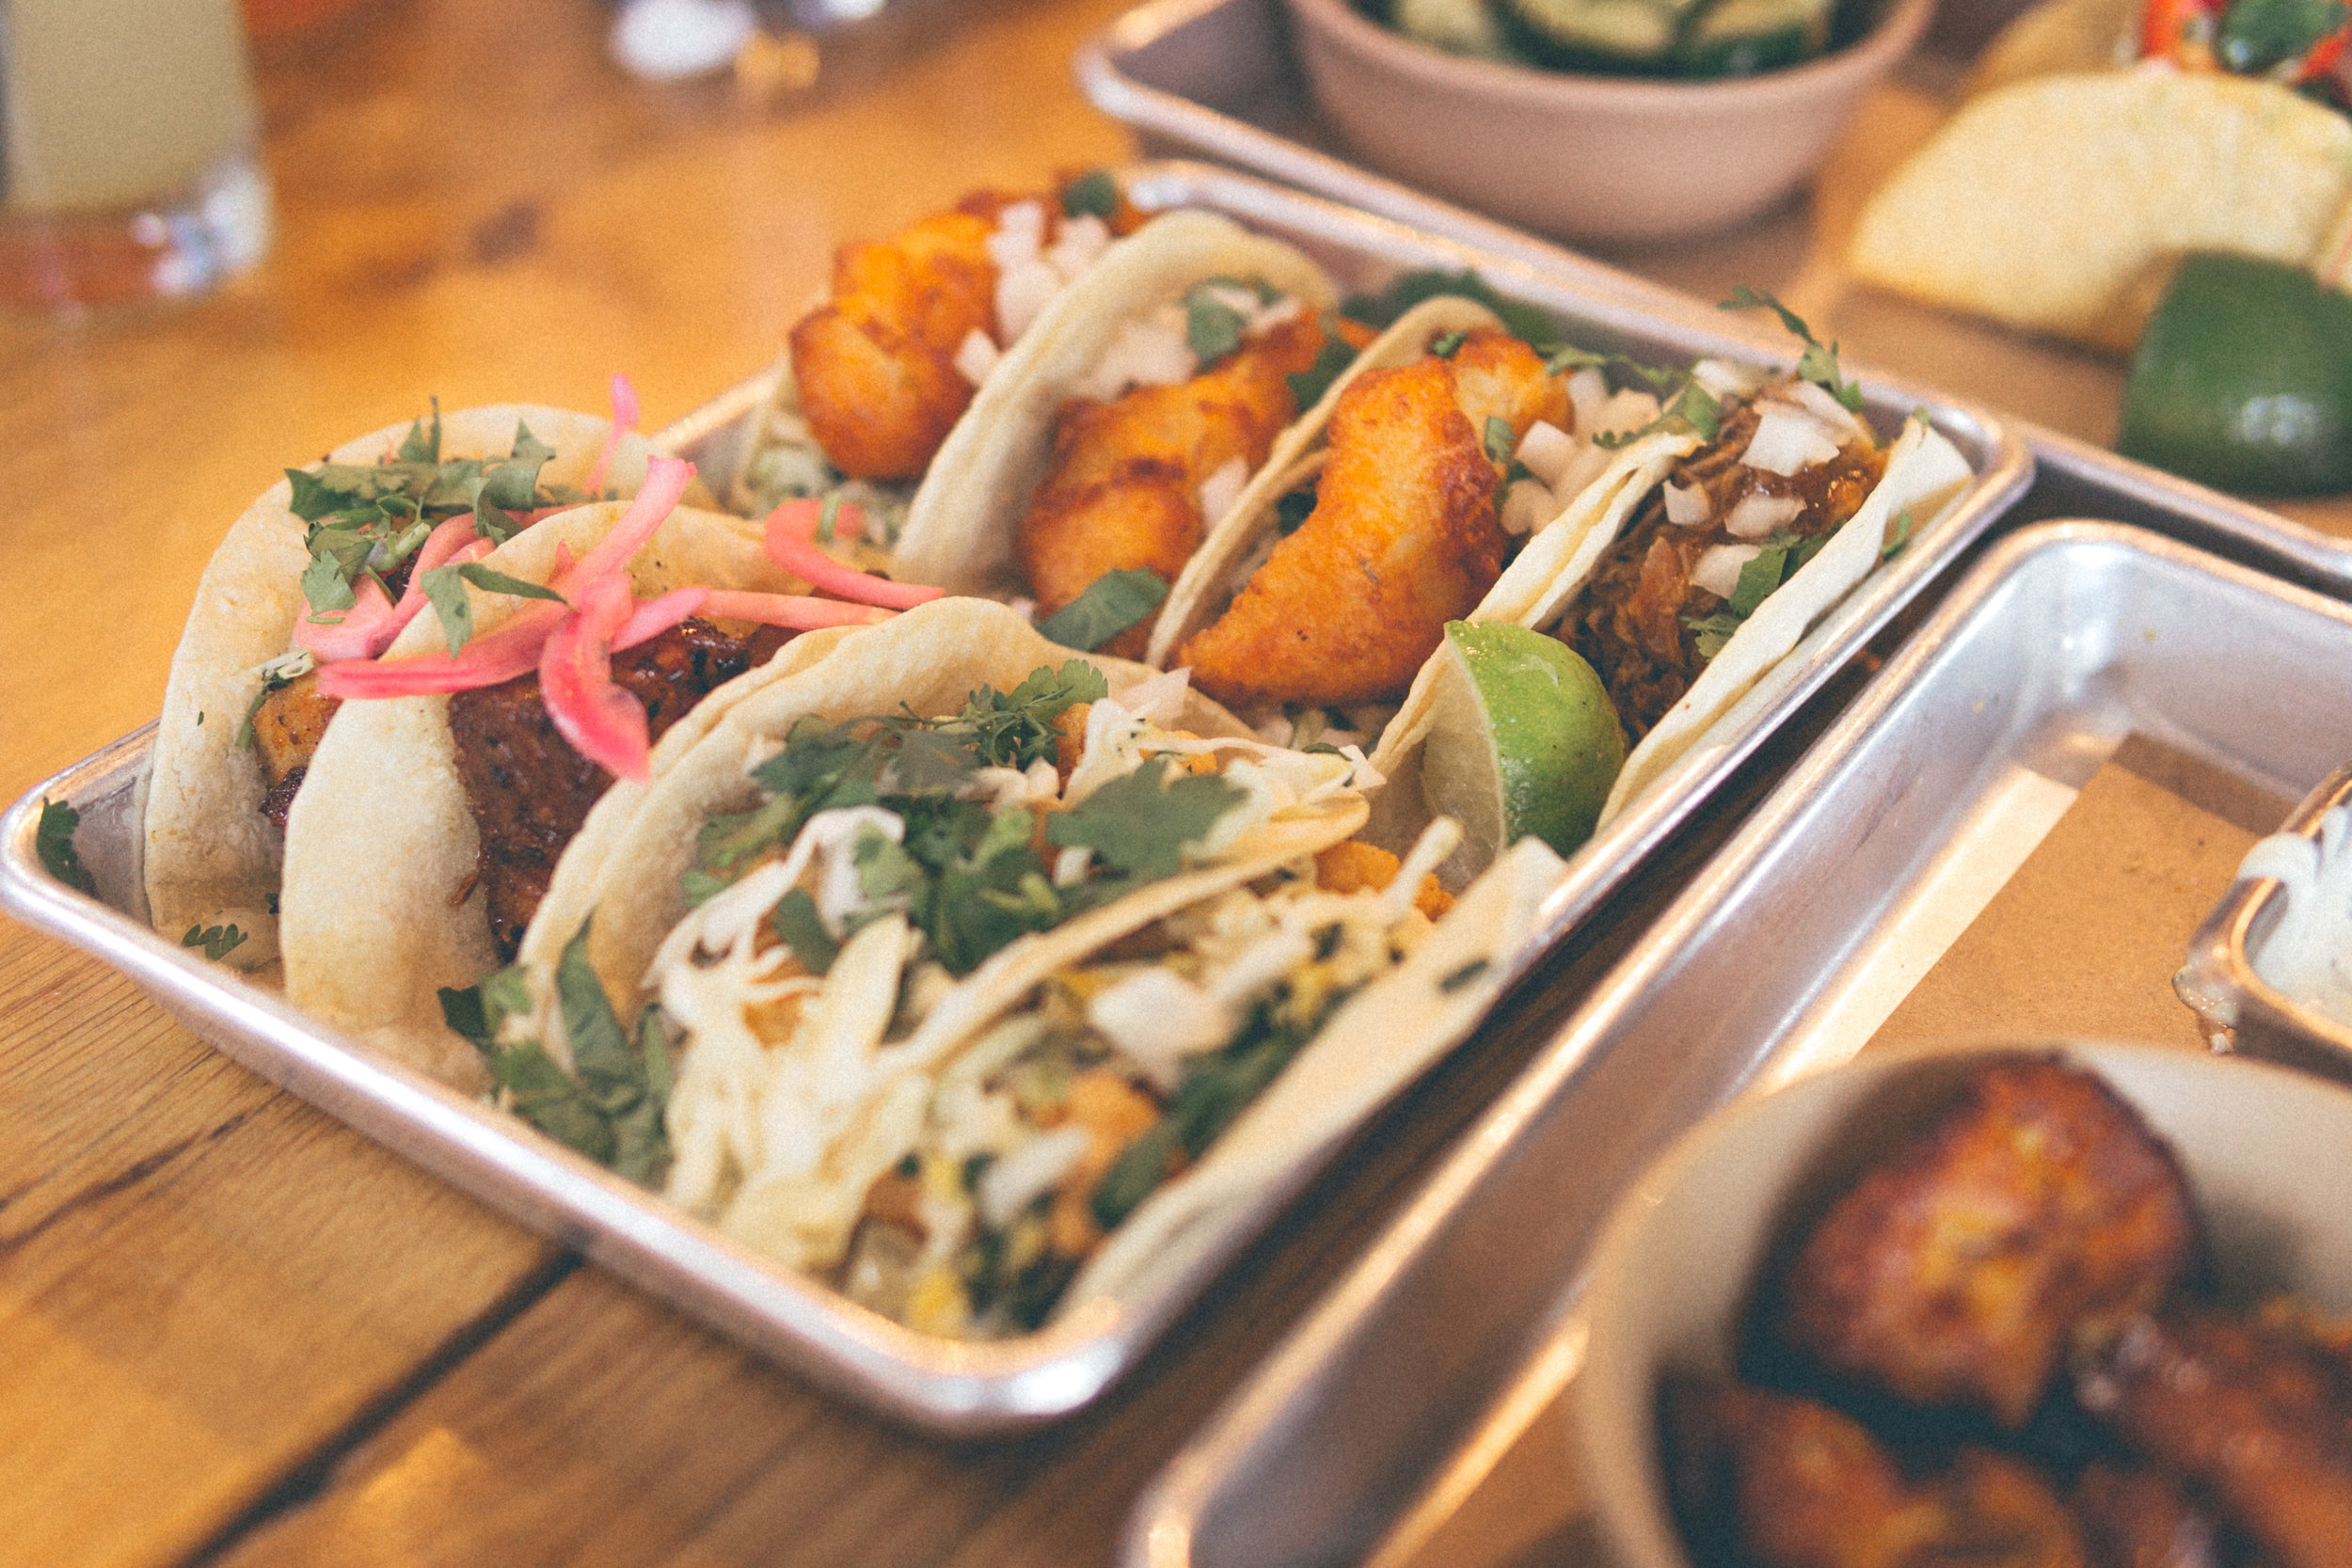 Baja Fish, Duck, Pork Belly and Rock Shrimp Tacos